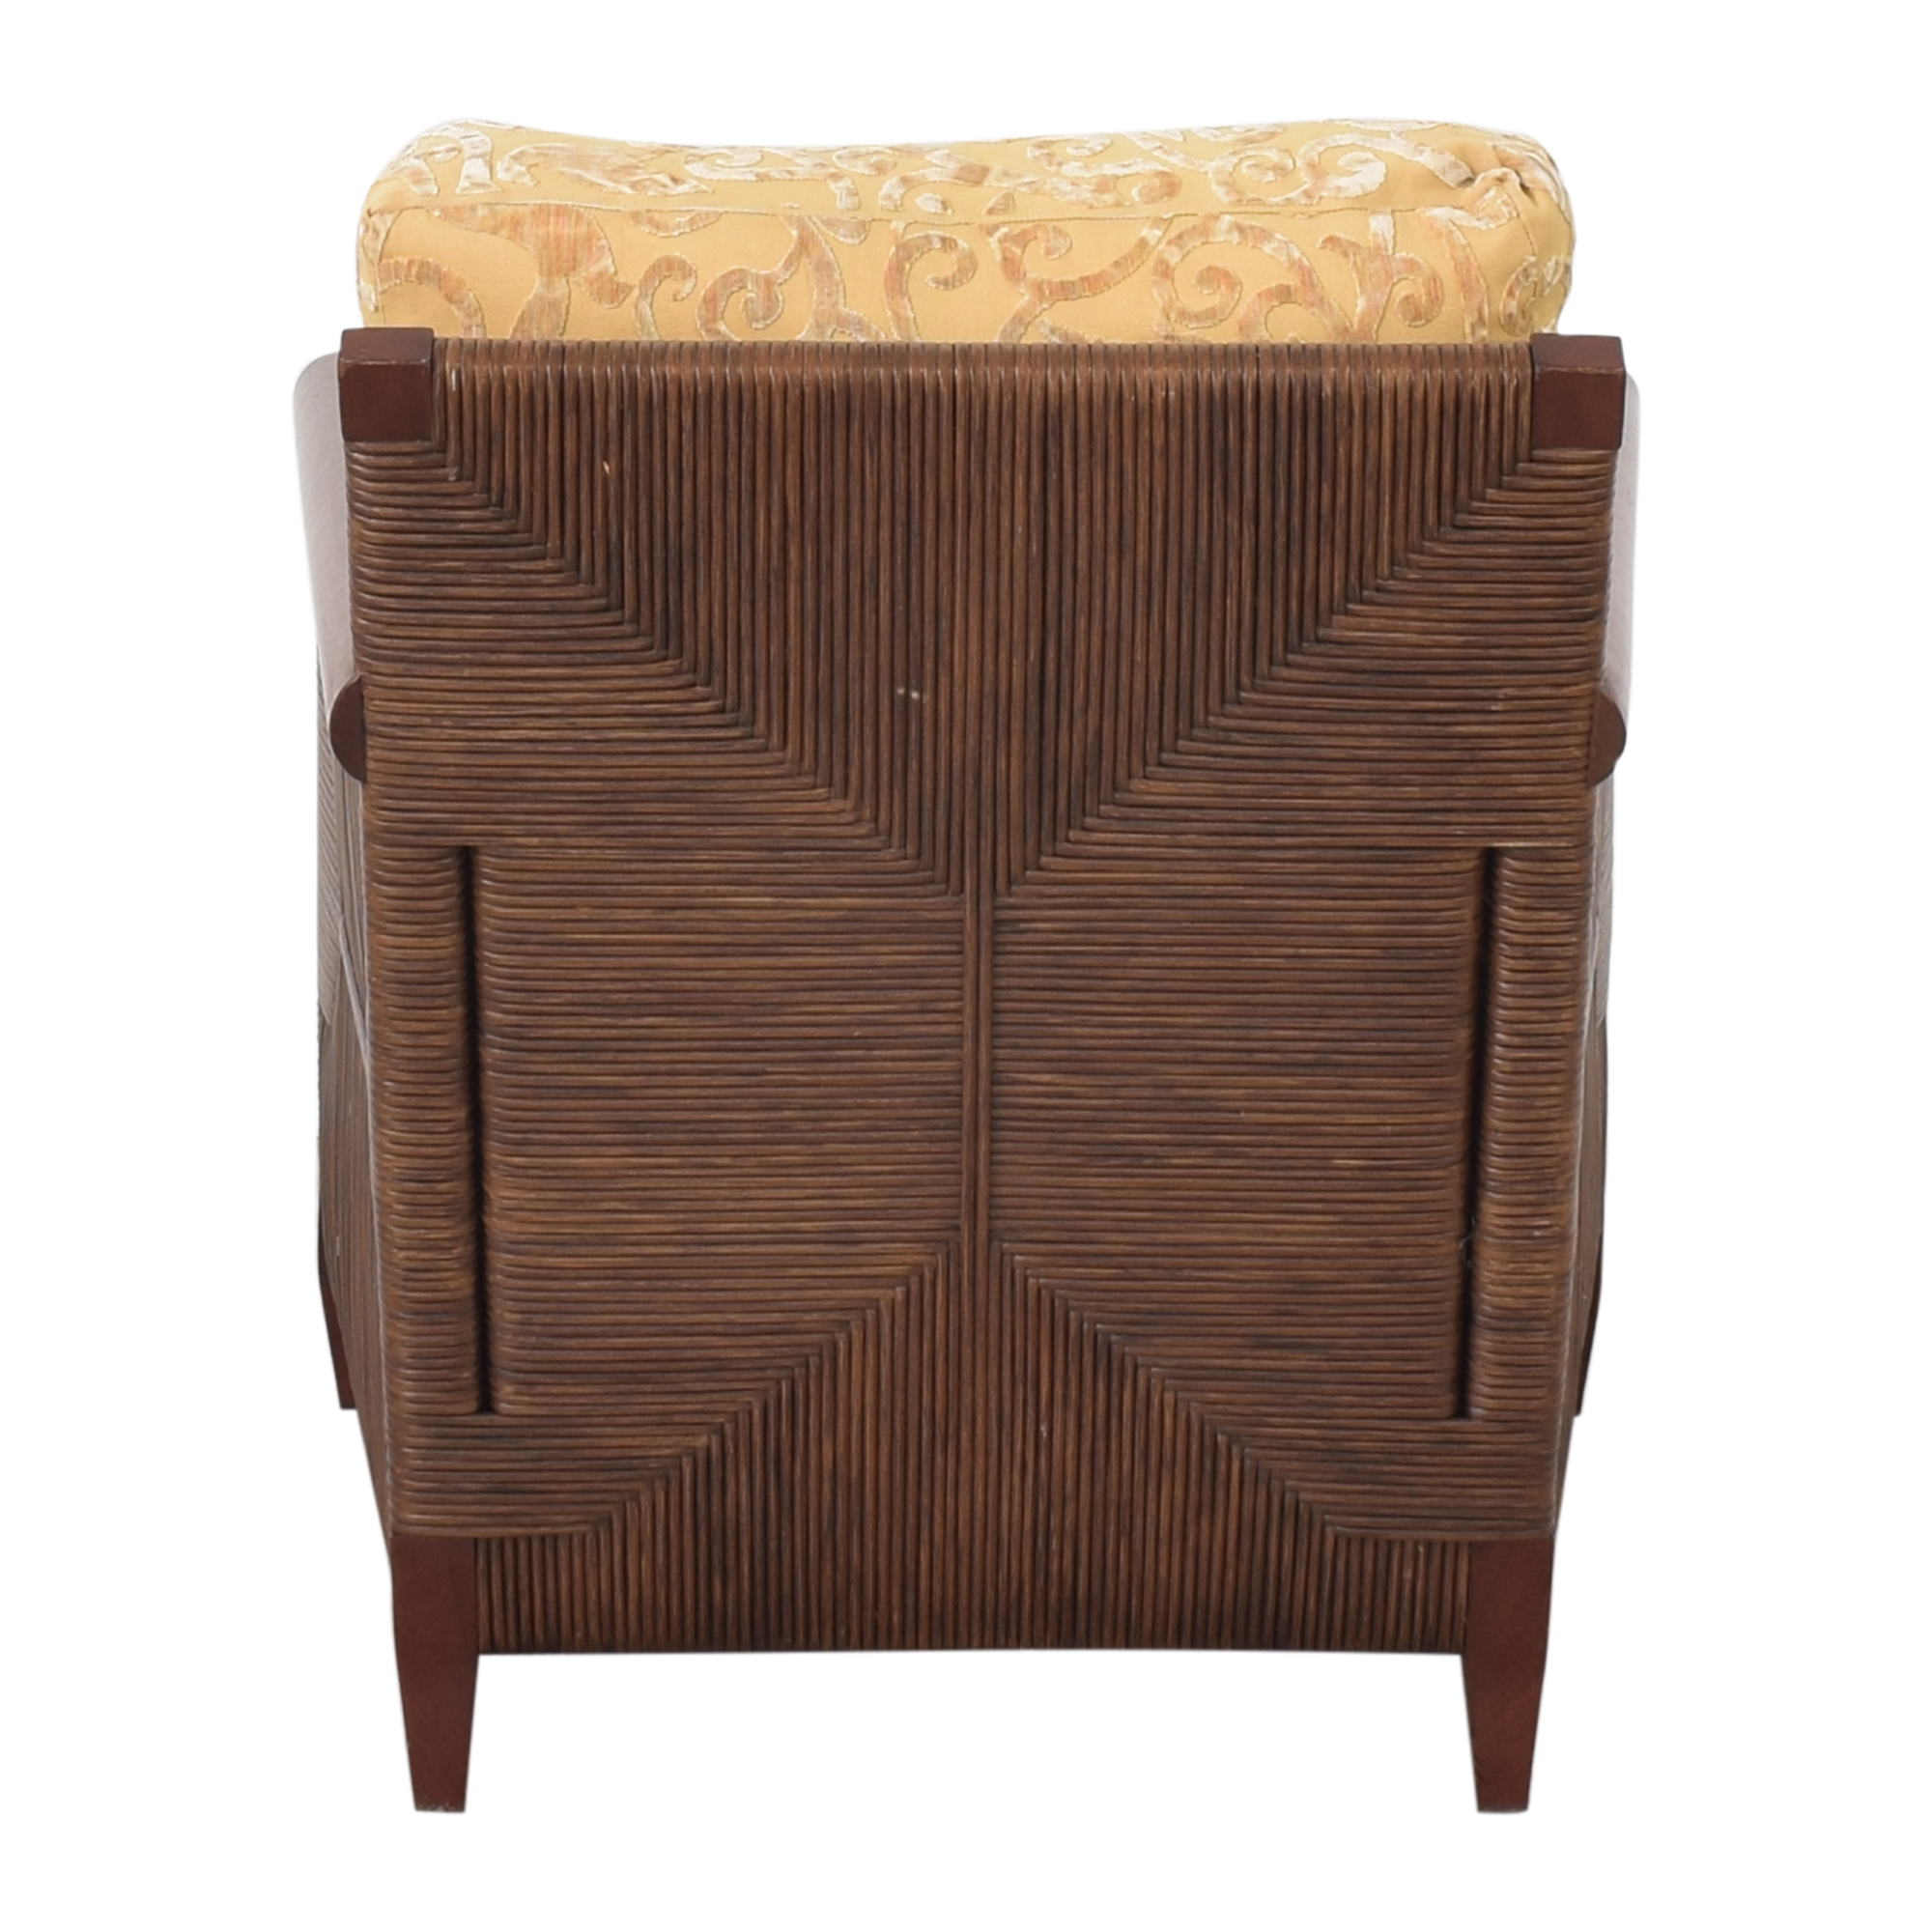 Donghia Donghia by John Hutton Mahogany and Wicker Lounger dimensions